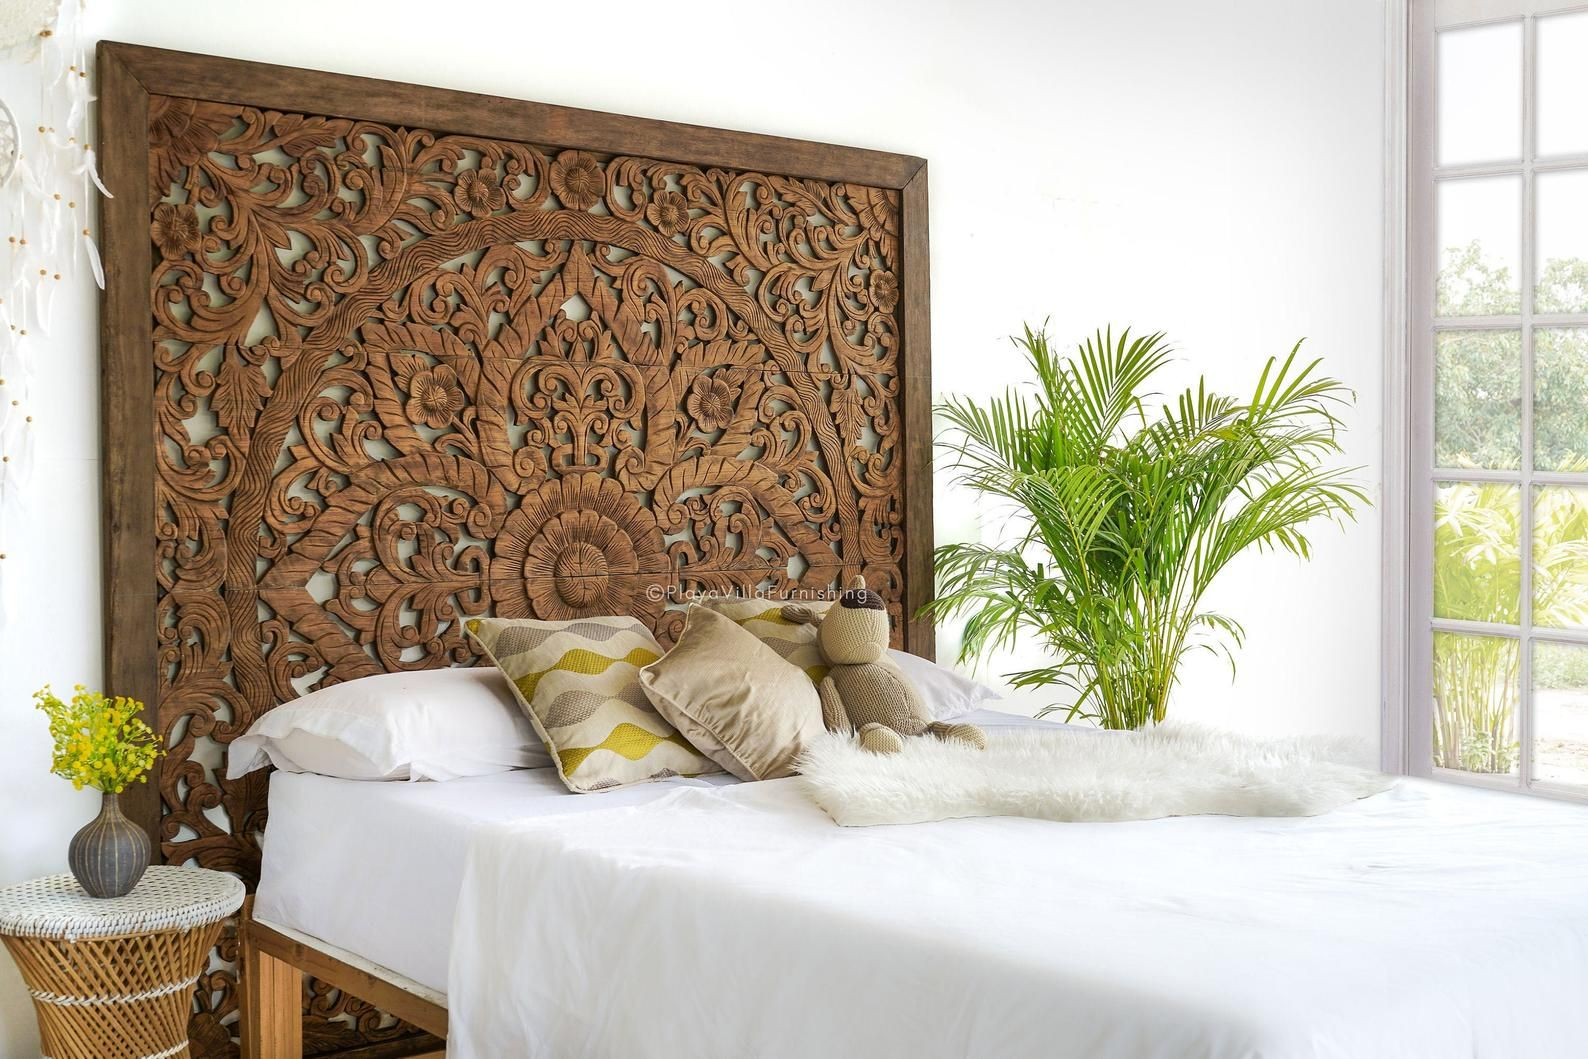 King Bed Headboard with Frame Wood Carving, Mounted Wall